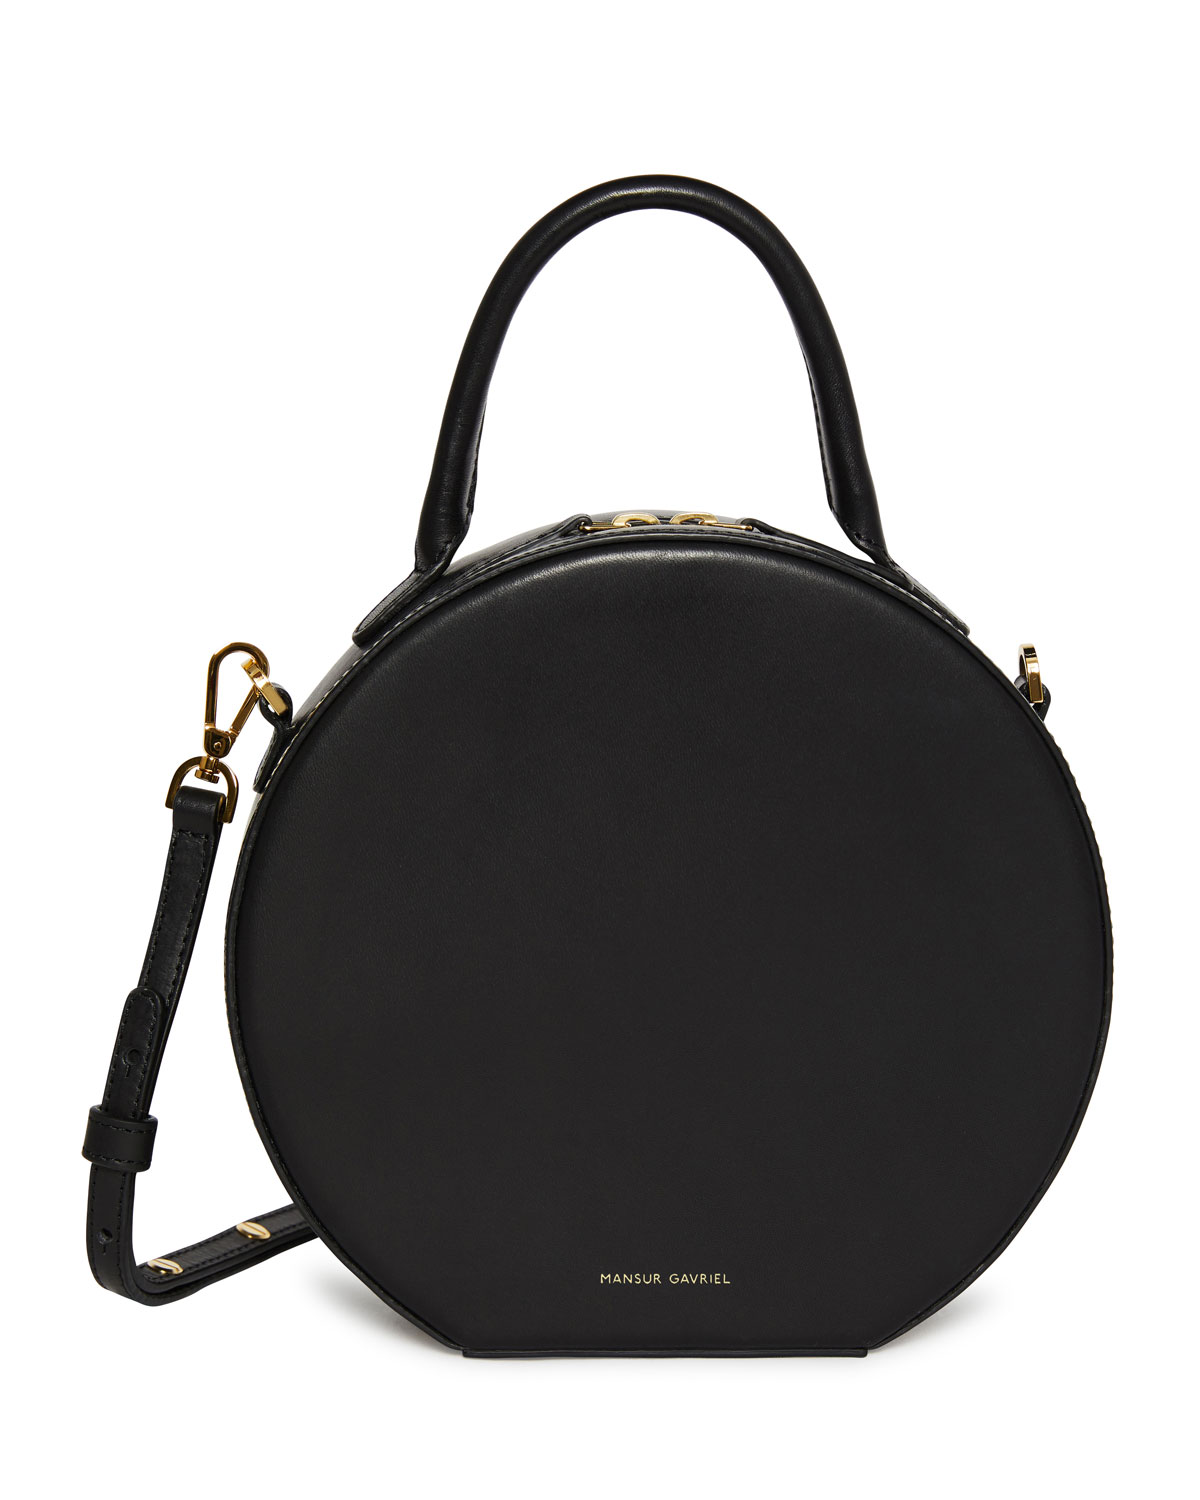 bfc7121e089b Mansur Gavriel Circle Vegetable-Tanned Leather Crossbody Bag ...